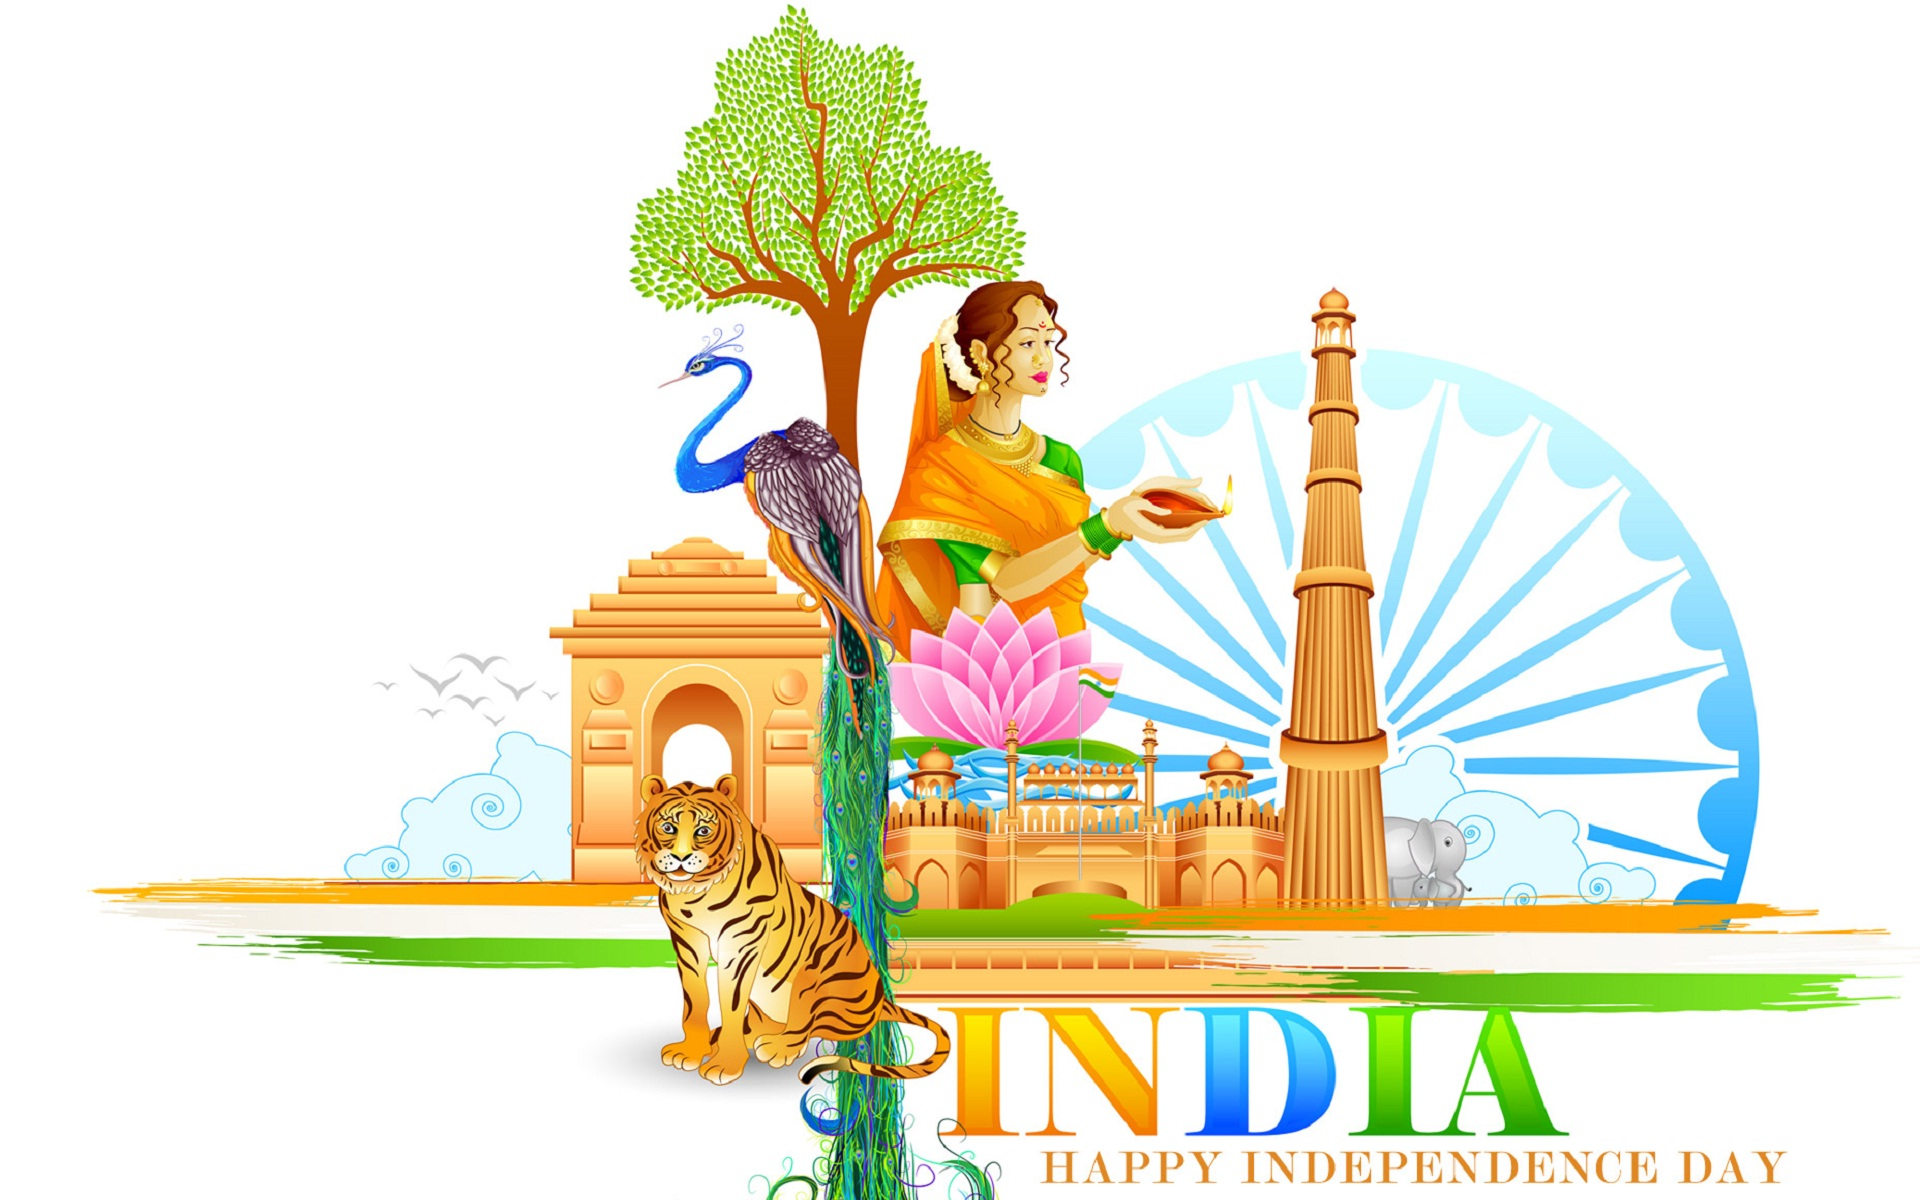 http://www.jkahir.com/wp-content/uploads/2018/08/Independence-Day-Wallpapers-And-Images-Download.jpg